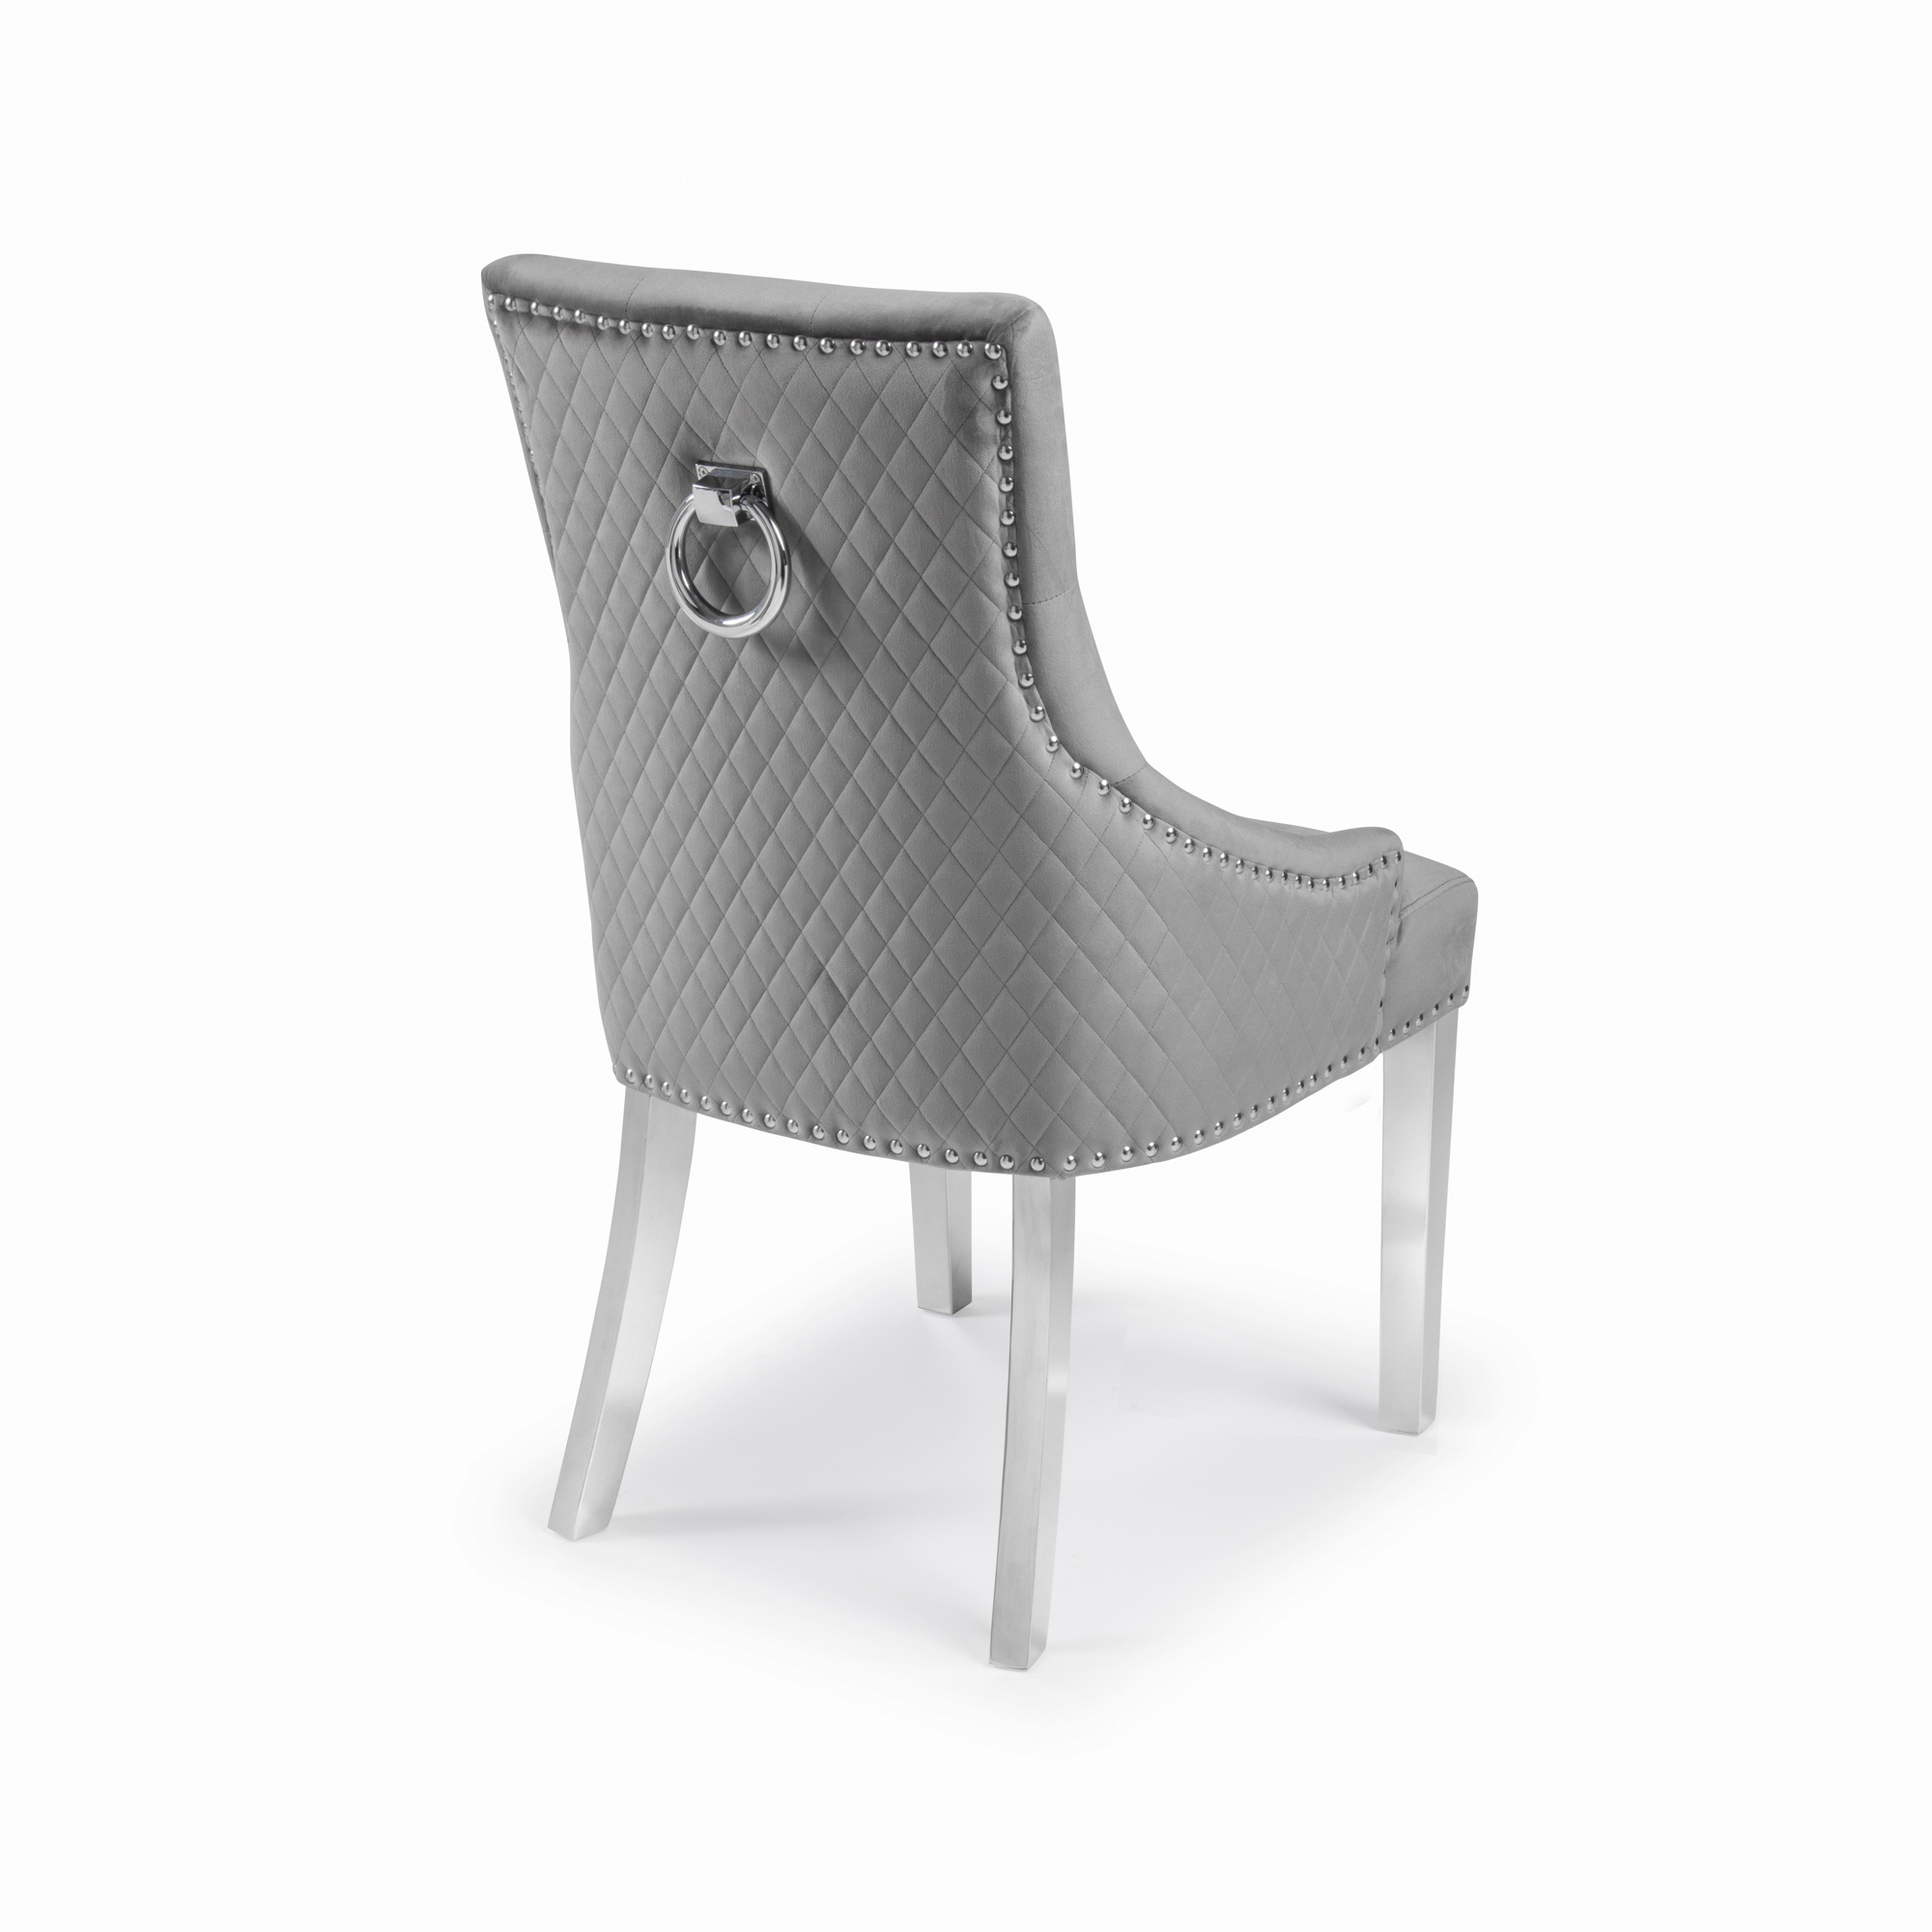 CLEARANCE: Chelsea Brushed Velvet Scoop Back Dining Chair in Grey – Diamond Stitch